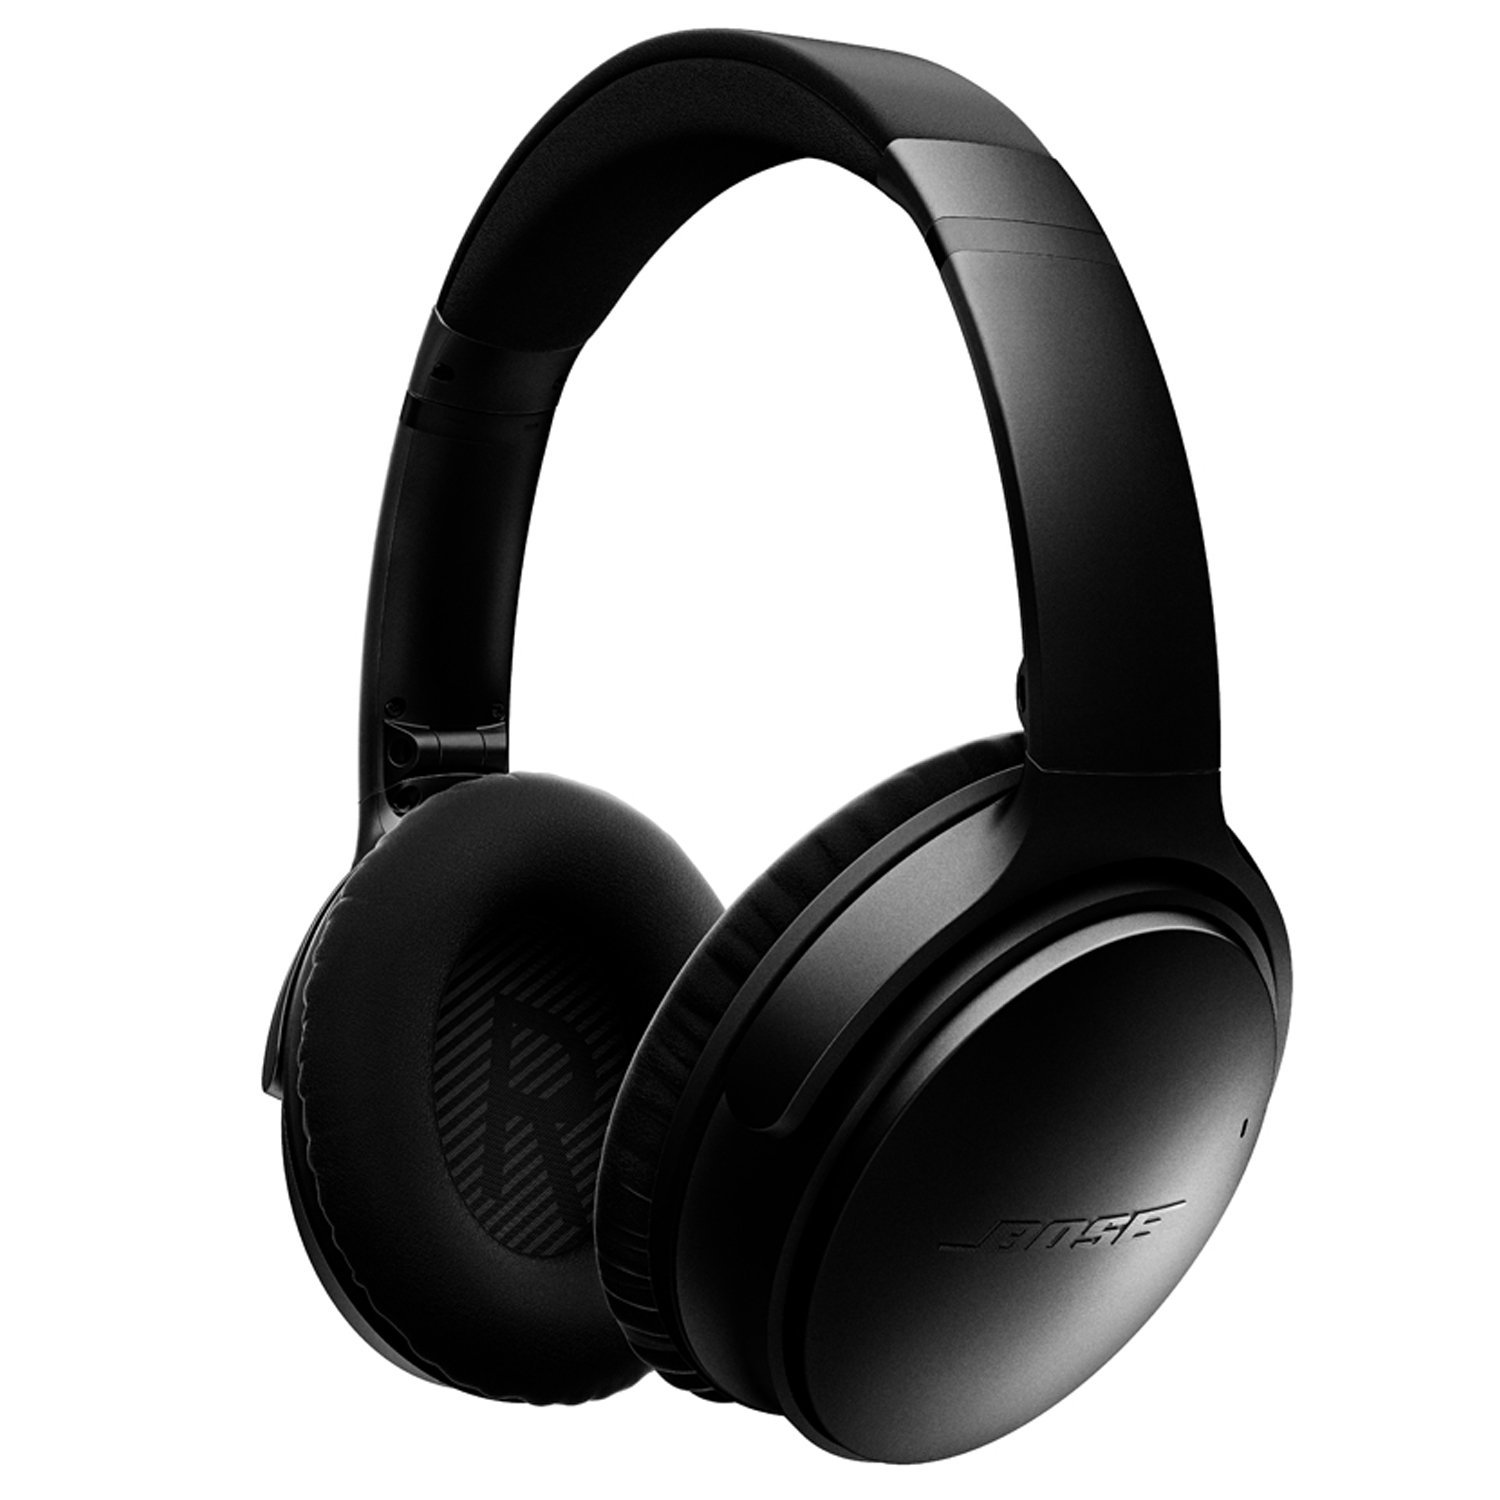 Top 10 Best Noise Cancelling Headphones Work best for you